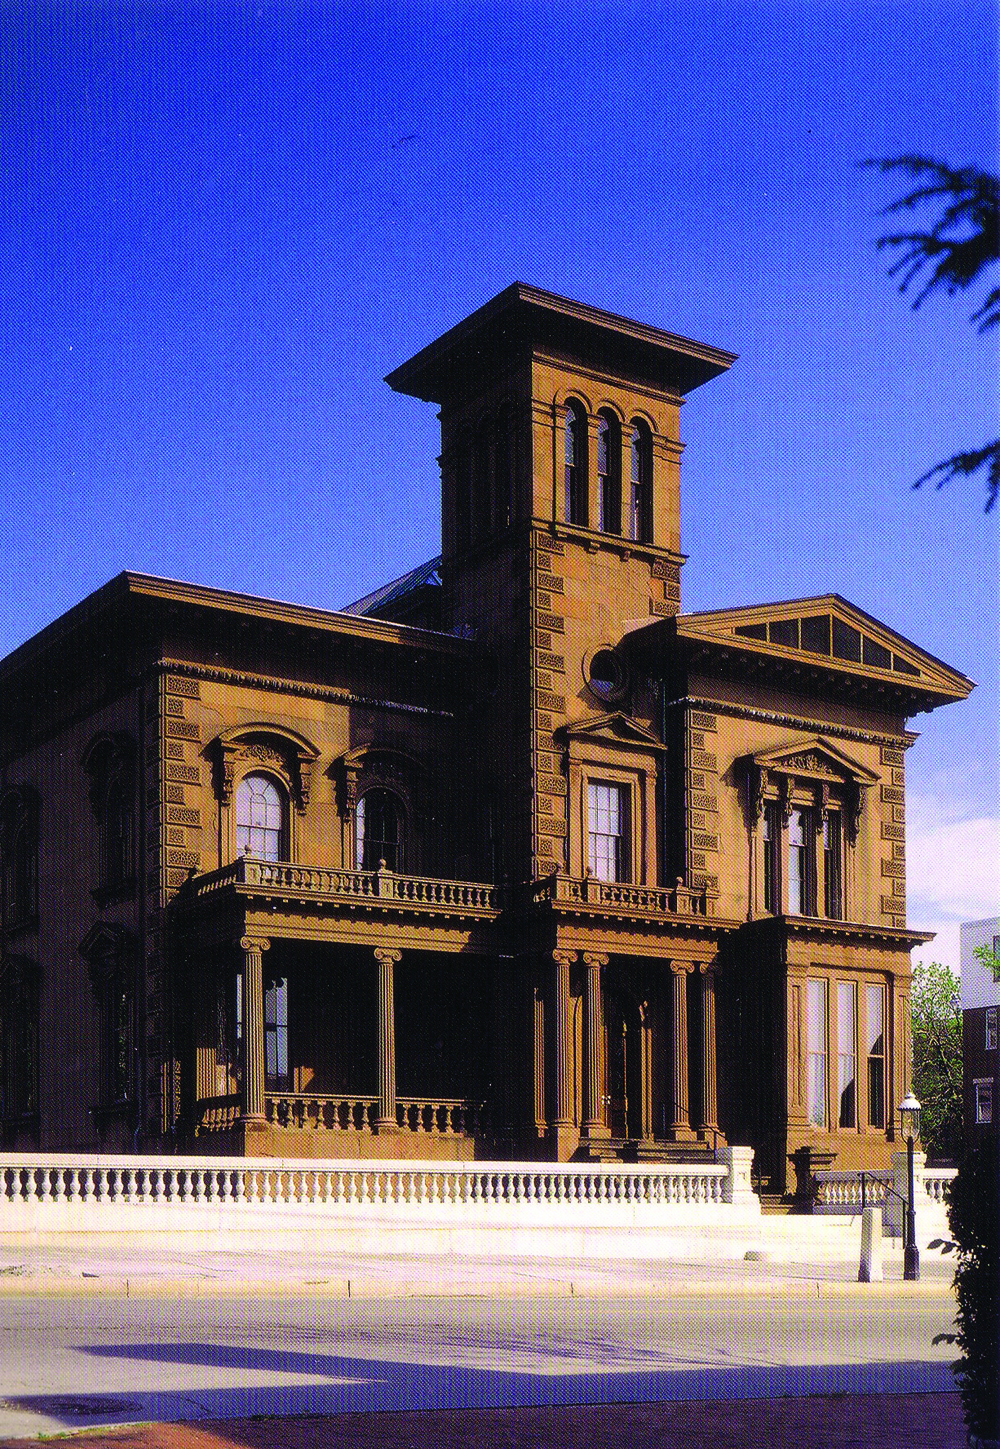 Victoria Mansion, Danforth Street, Portland